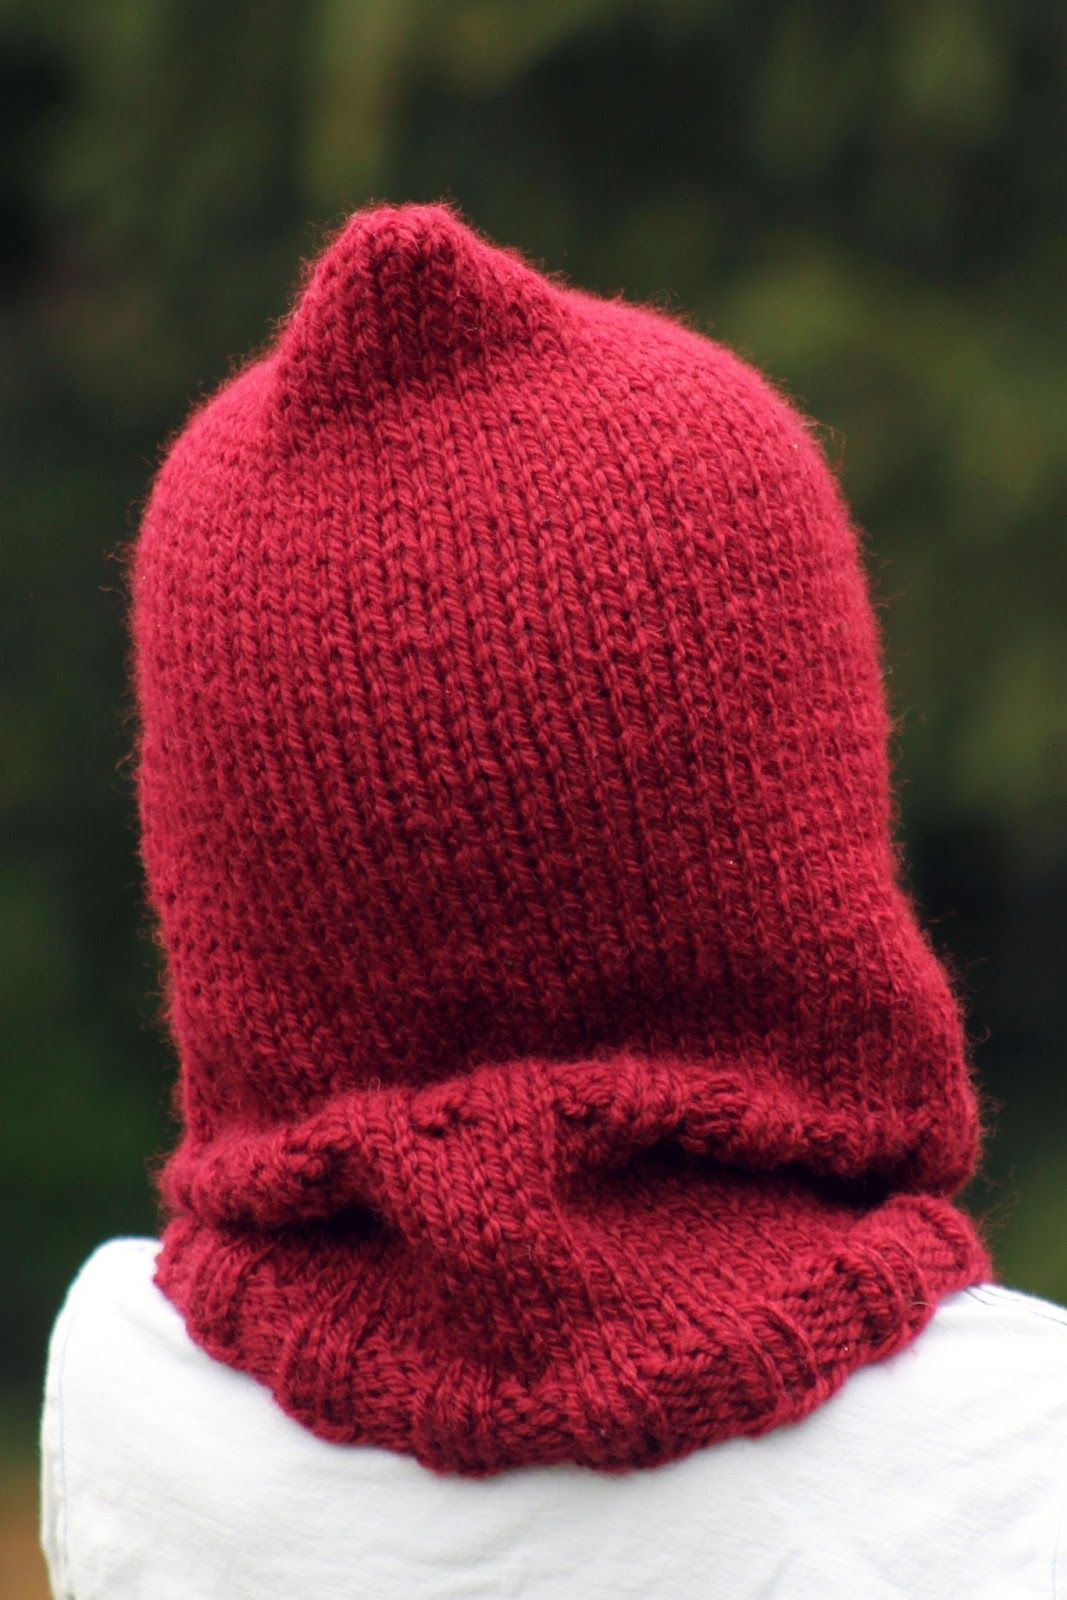 Little Red Hooded Cowl (With images) | Hooded cowl, Hat ...